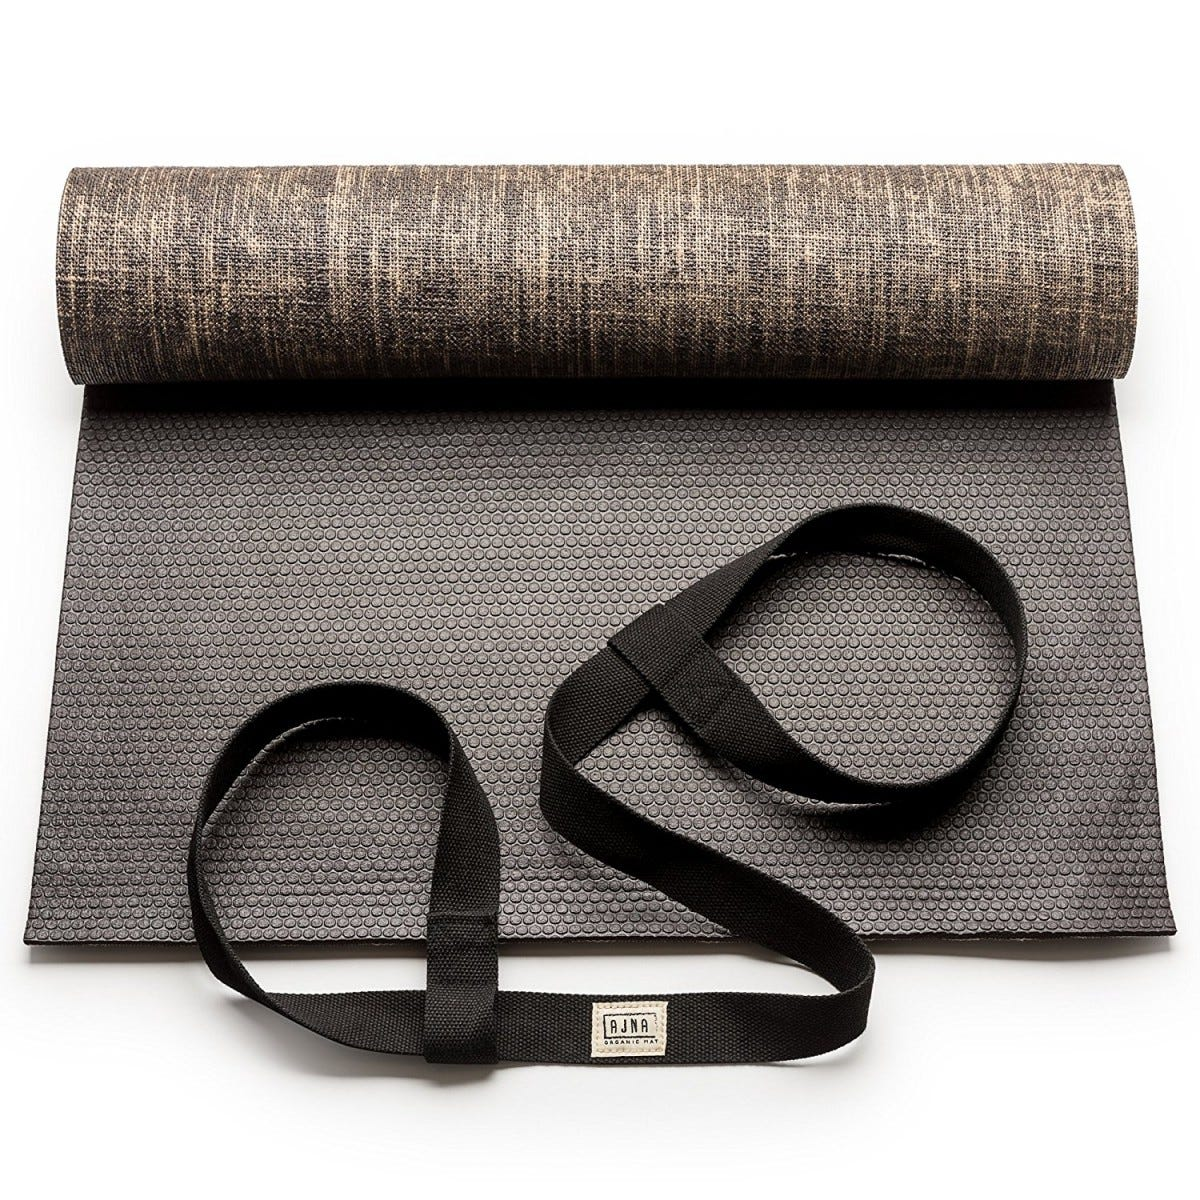 The Five Best Yoga Mats For Beginners To Advanced Yogis